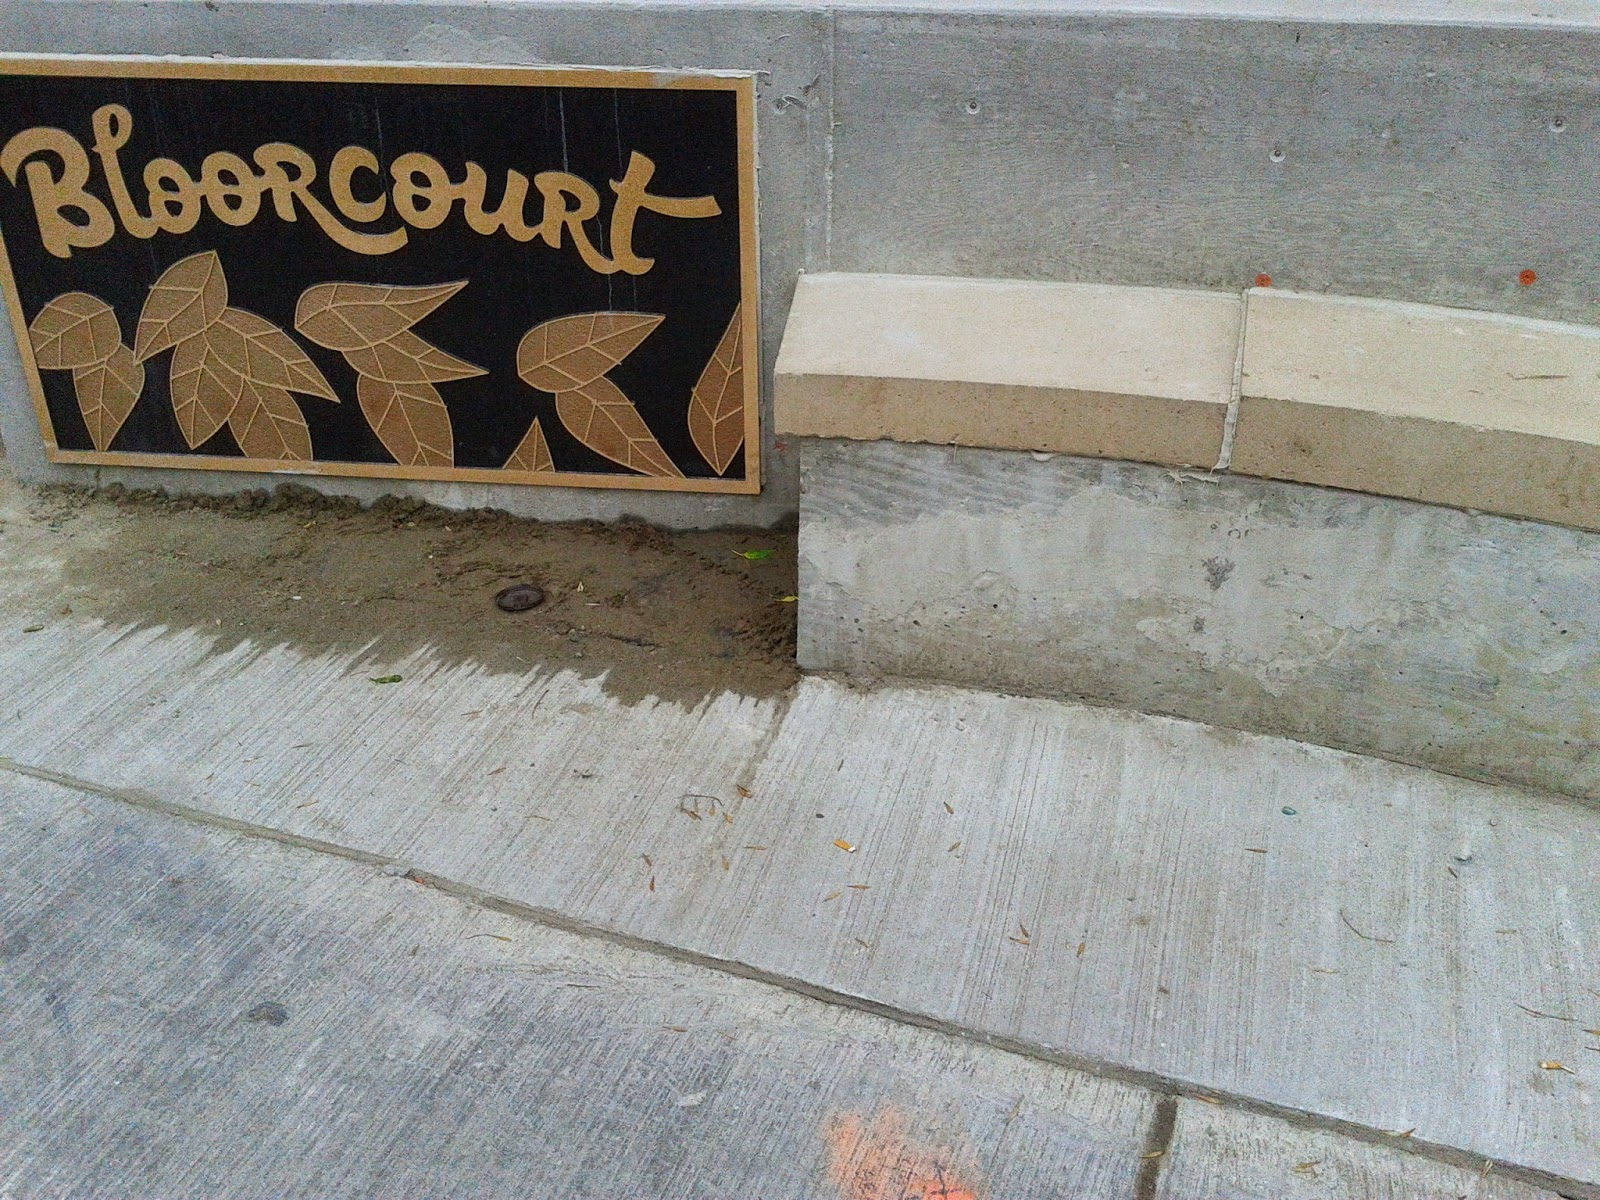 Bloorcourt sign at Dufferin and Bloor (bench)